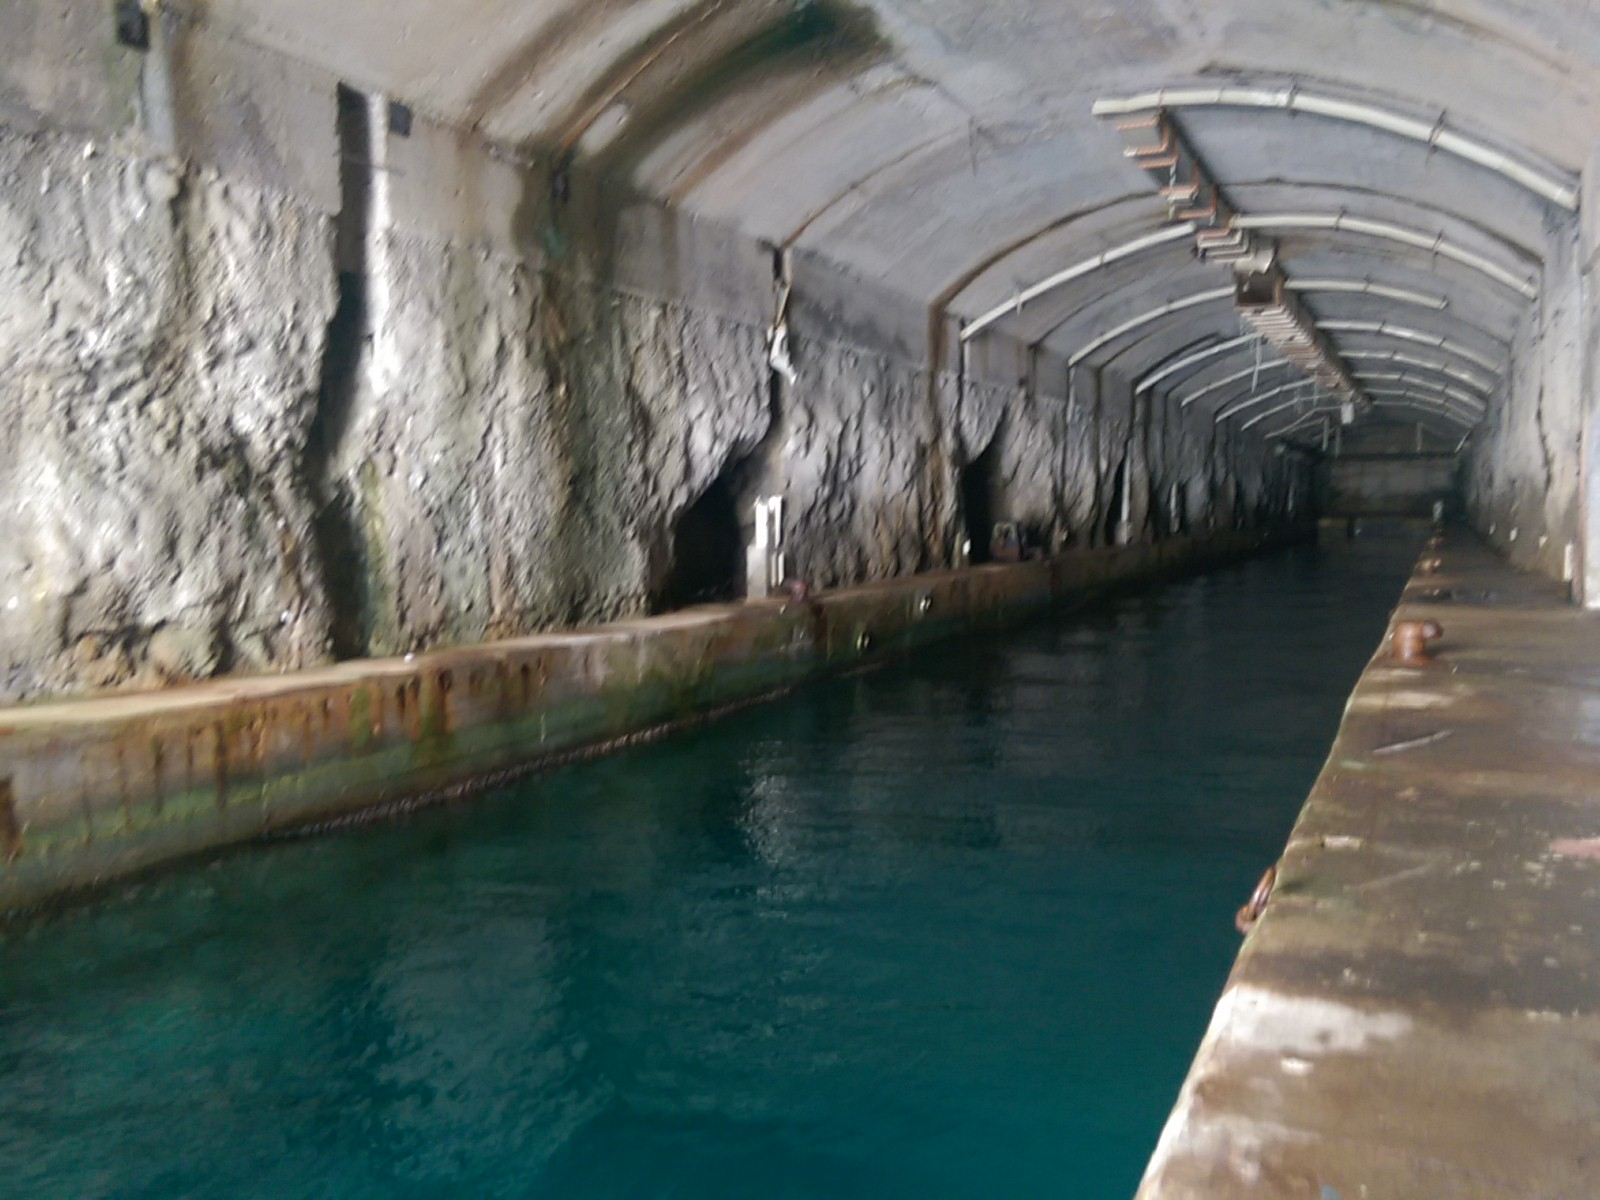 A long narrow whitewashed tunnel heading into the distance with walkways down each side and water in the middle